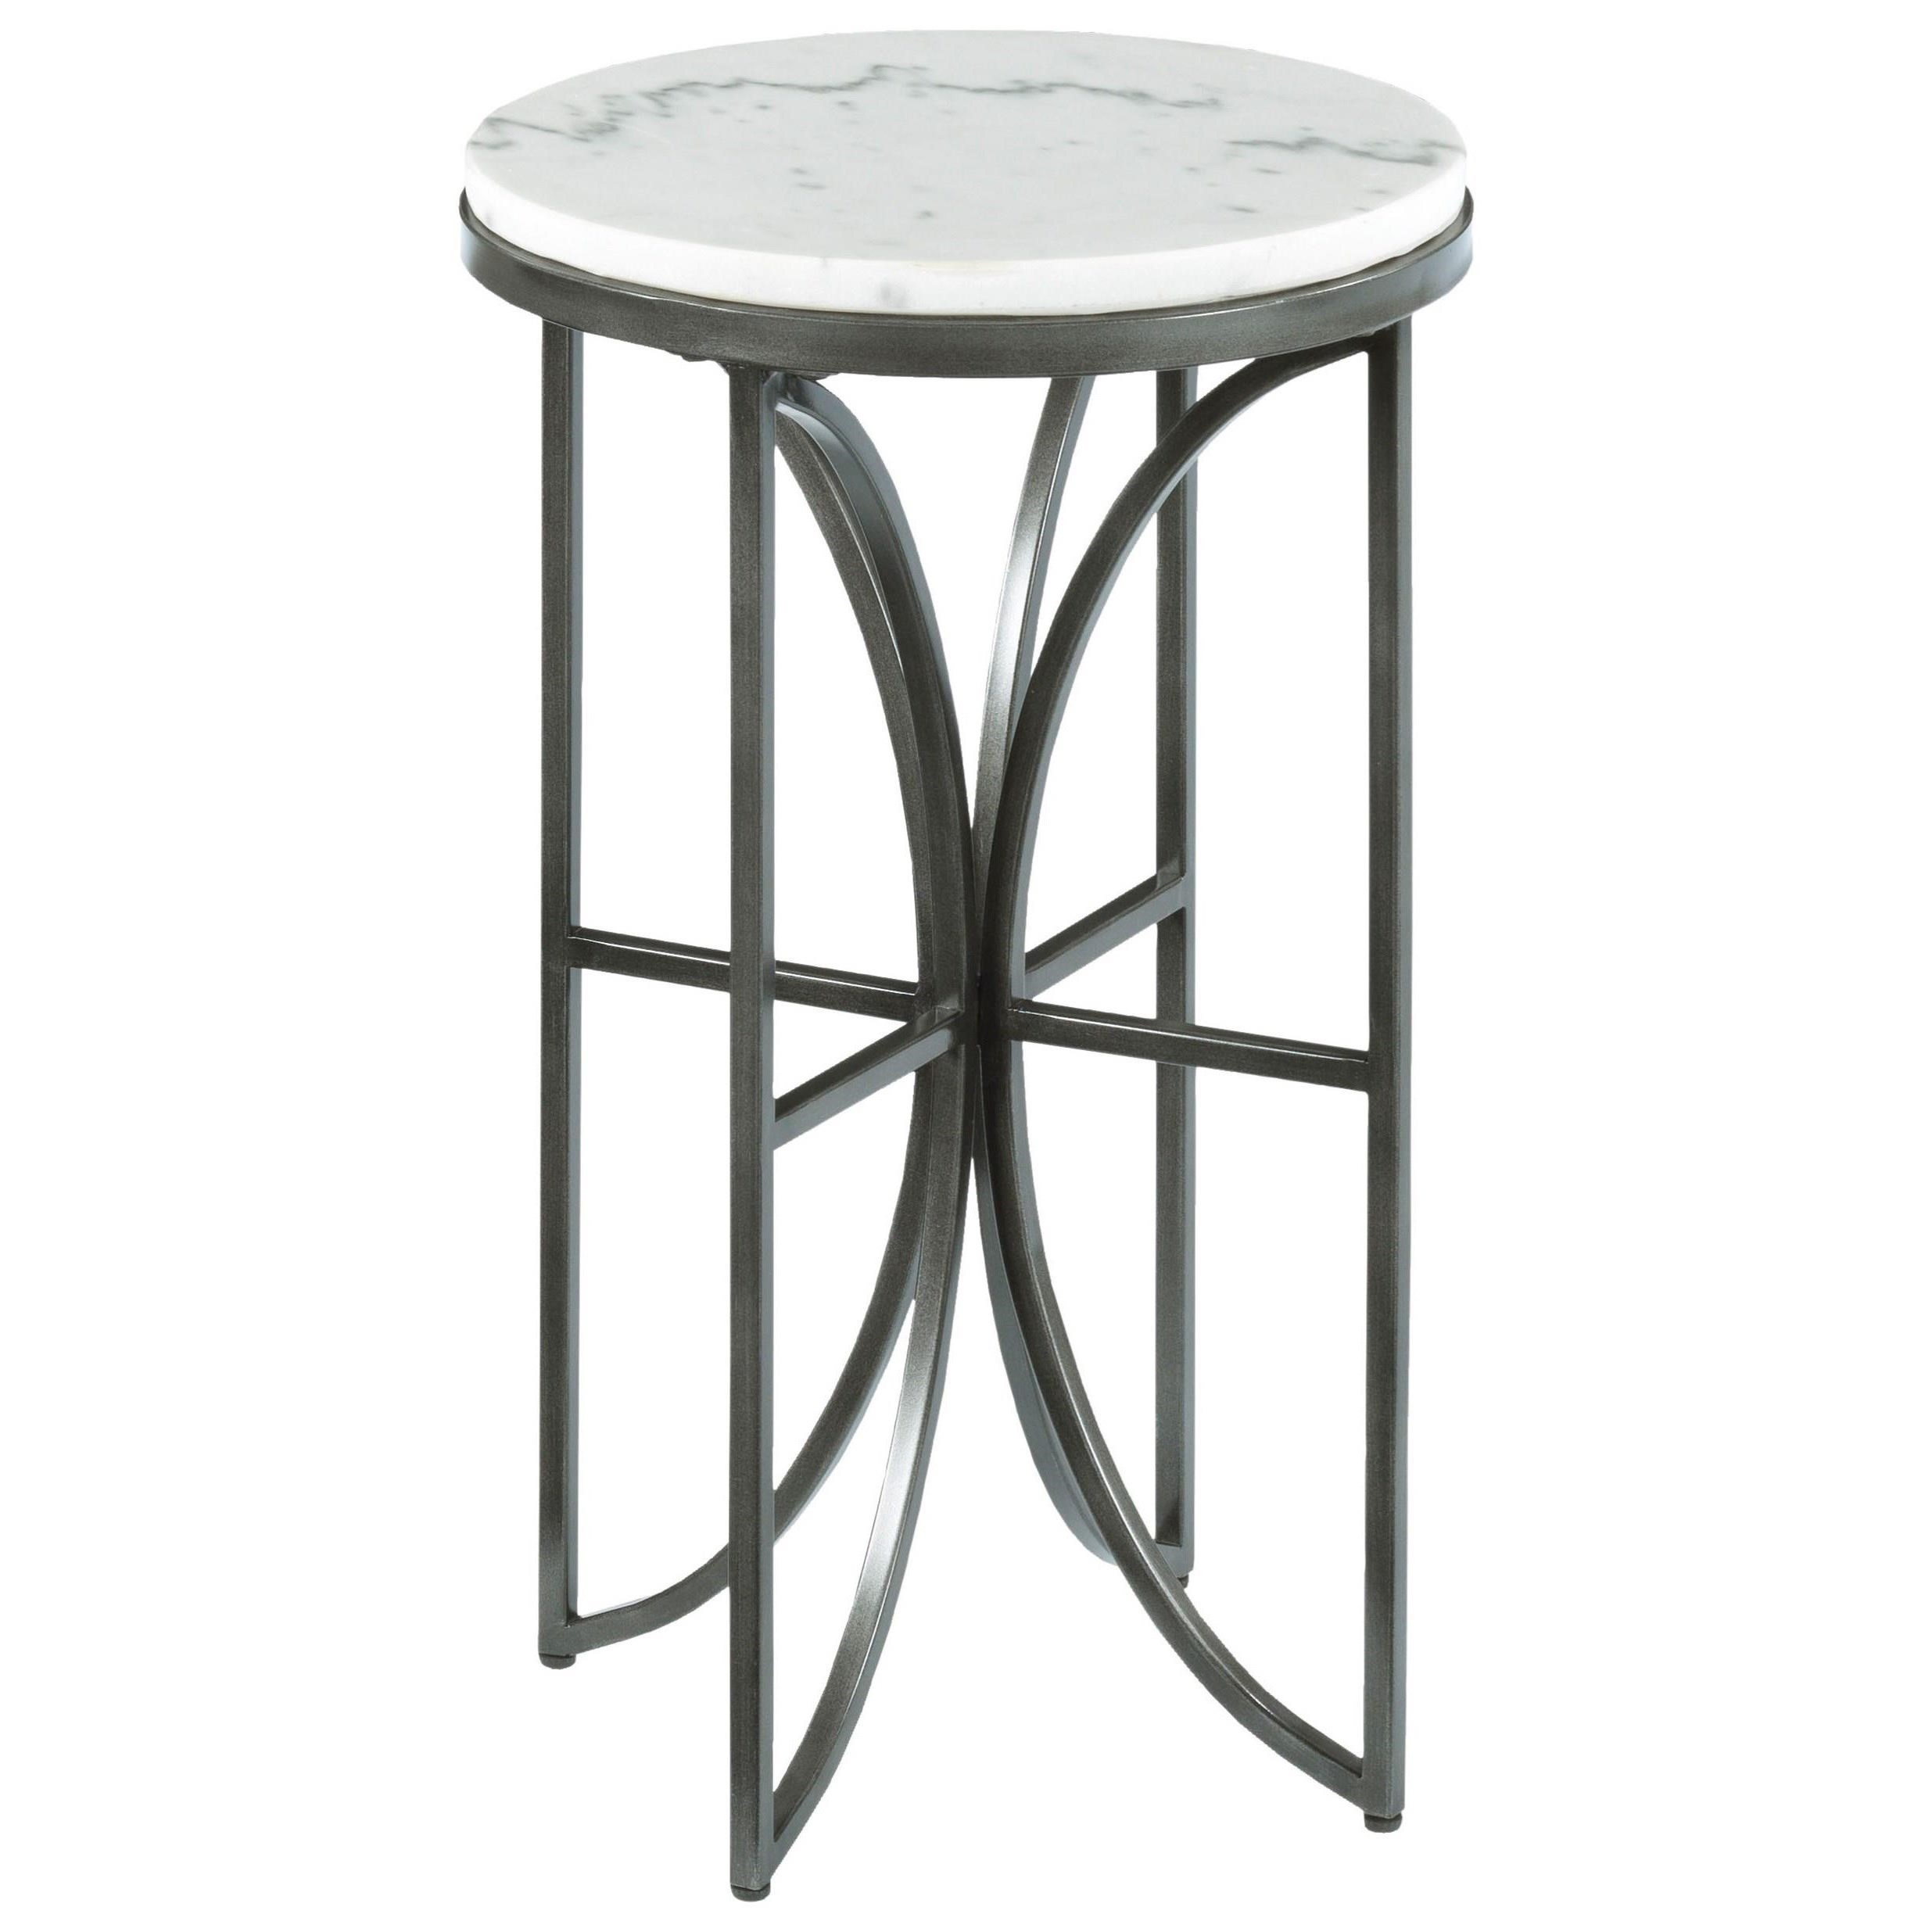 small round accent table with marble top hammary wolf and products color impact metal used ethan allen coffee tables dining bench homesense patio furniture white wicker outdoor